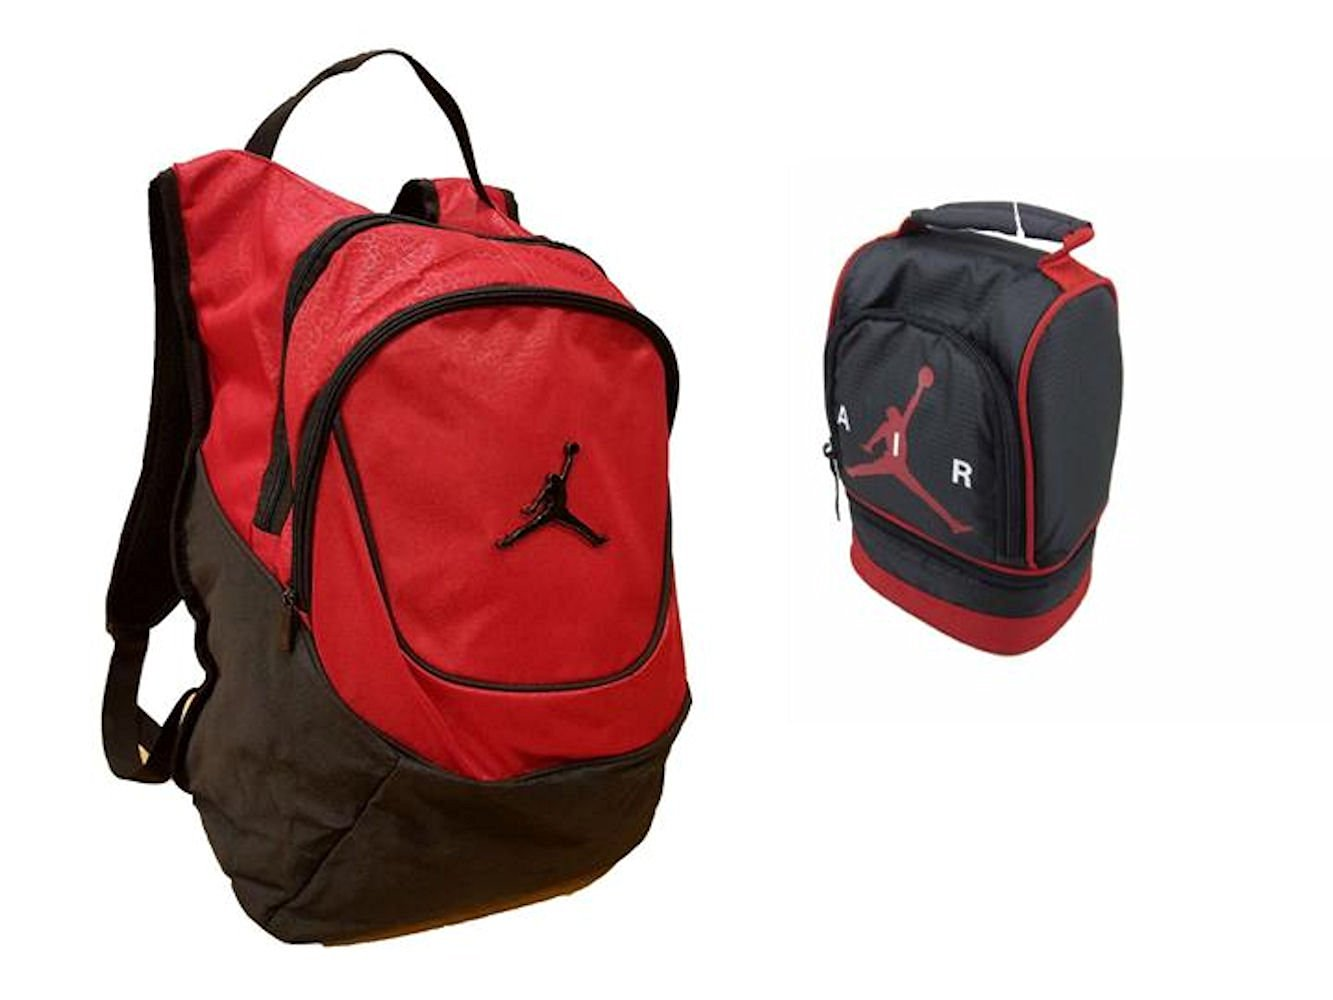 Nike Air Jordan Jumpman 23 Red Backpack & Black Air Lunch Tote Bag Combo + FREE Cell Phone Anti-Dust Plug